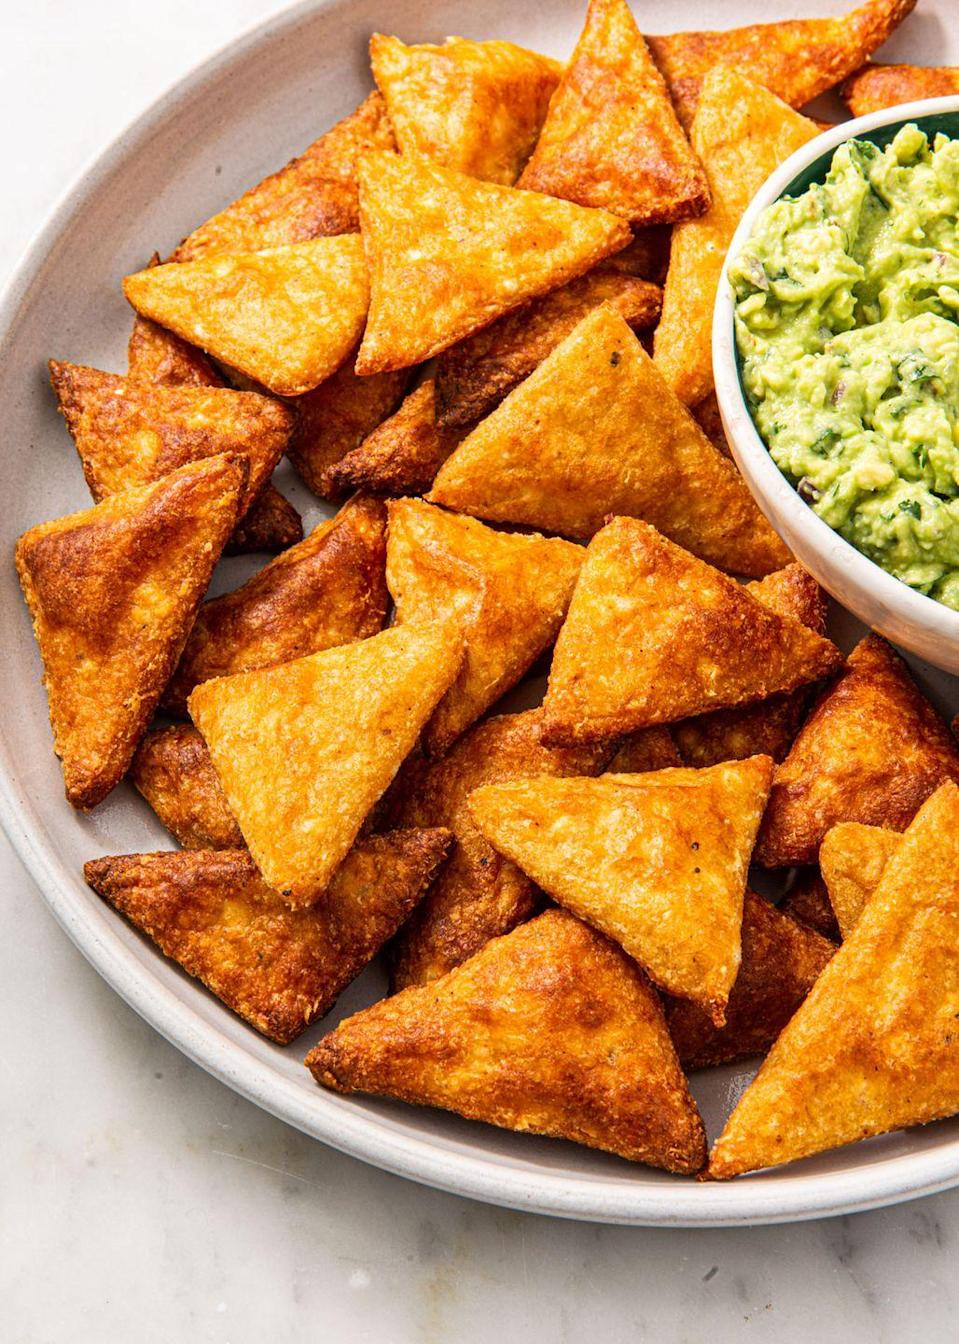 "<p>Can be served with guac, buffalo chicken dip, or any of our other noteworthy sides.</p><p>Get the recipe from <a href=""https://www.delish.com/cooking/recipe-ideas/a30326338/keto-tortilla-chips/"" rel=""nofollow noopener"" target=""_blank"" data-ylk=""slk:Delish"" class=""link rapid-noclick-resp"">Delish</a>.</p>"